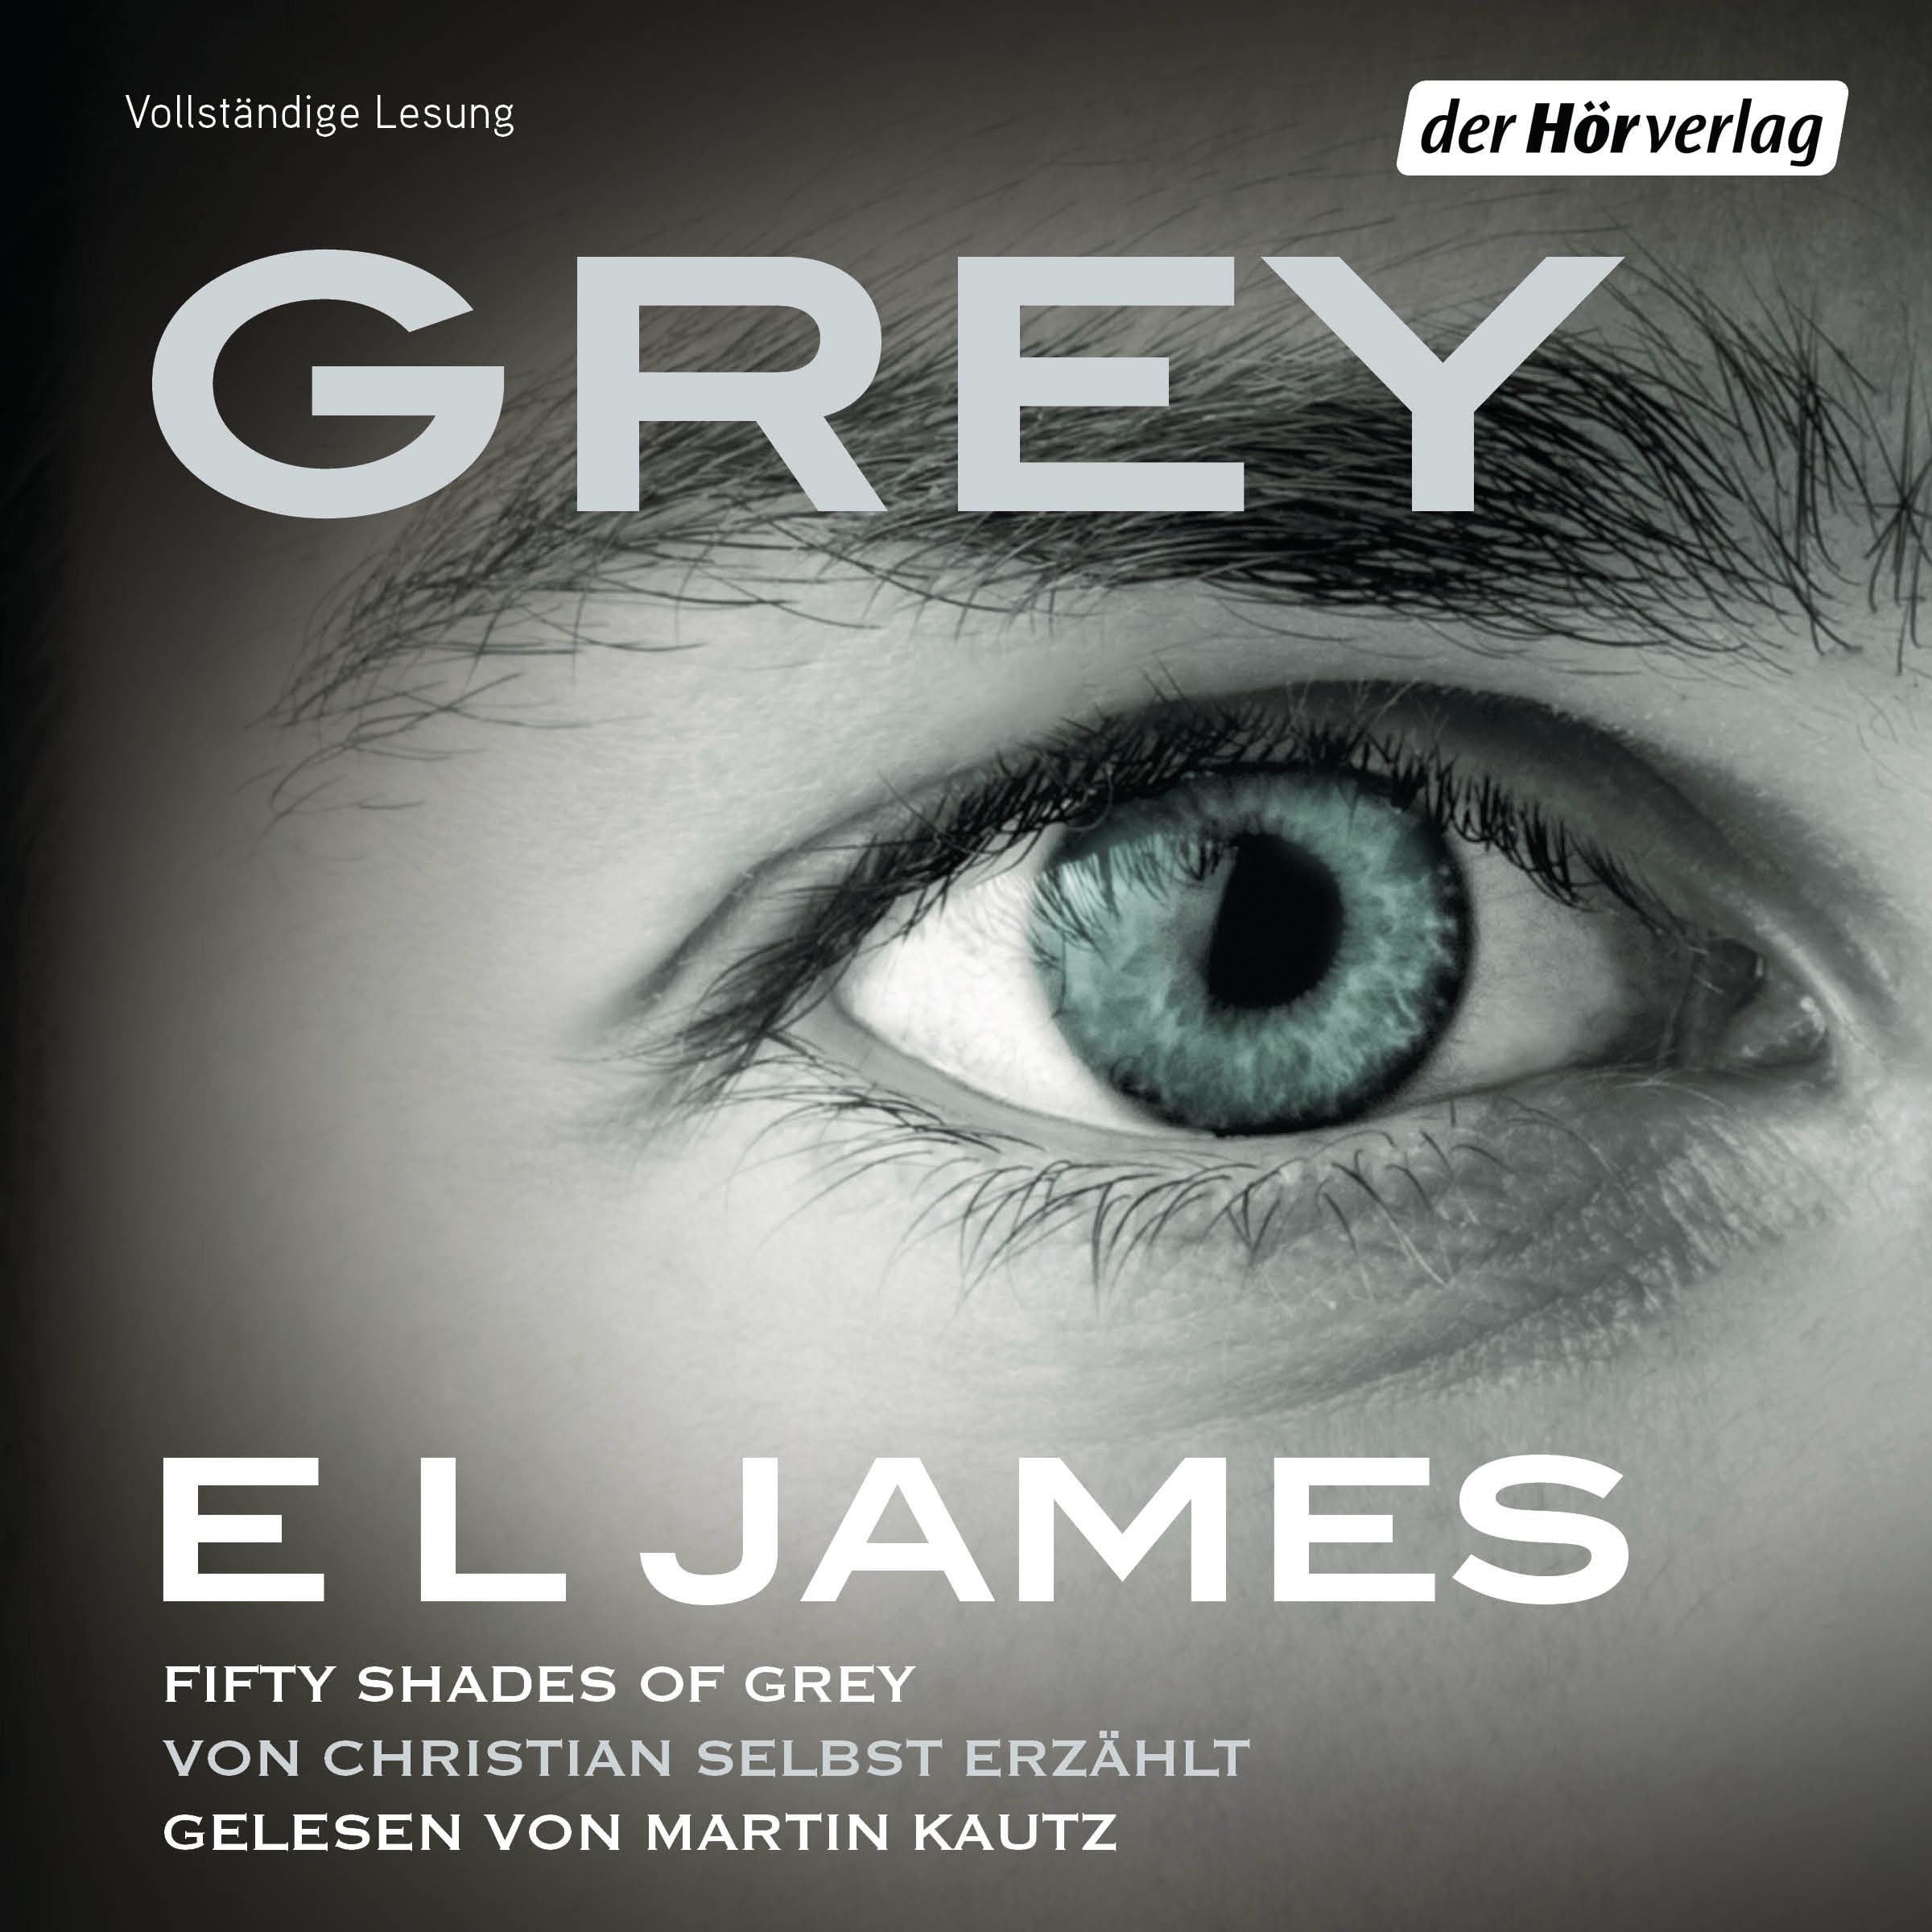 e l james grey fifty shades of grey von christian. Black Bedroom Furniture Sets. Home Design Ideas